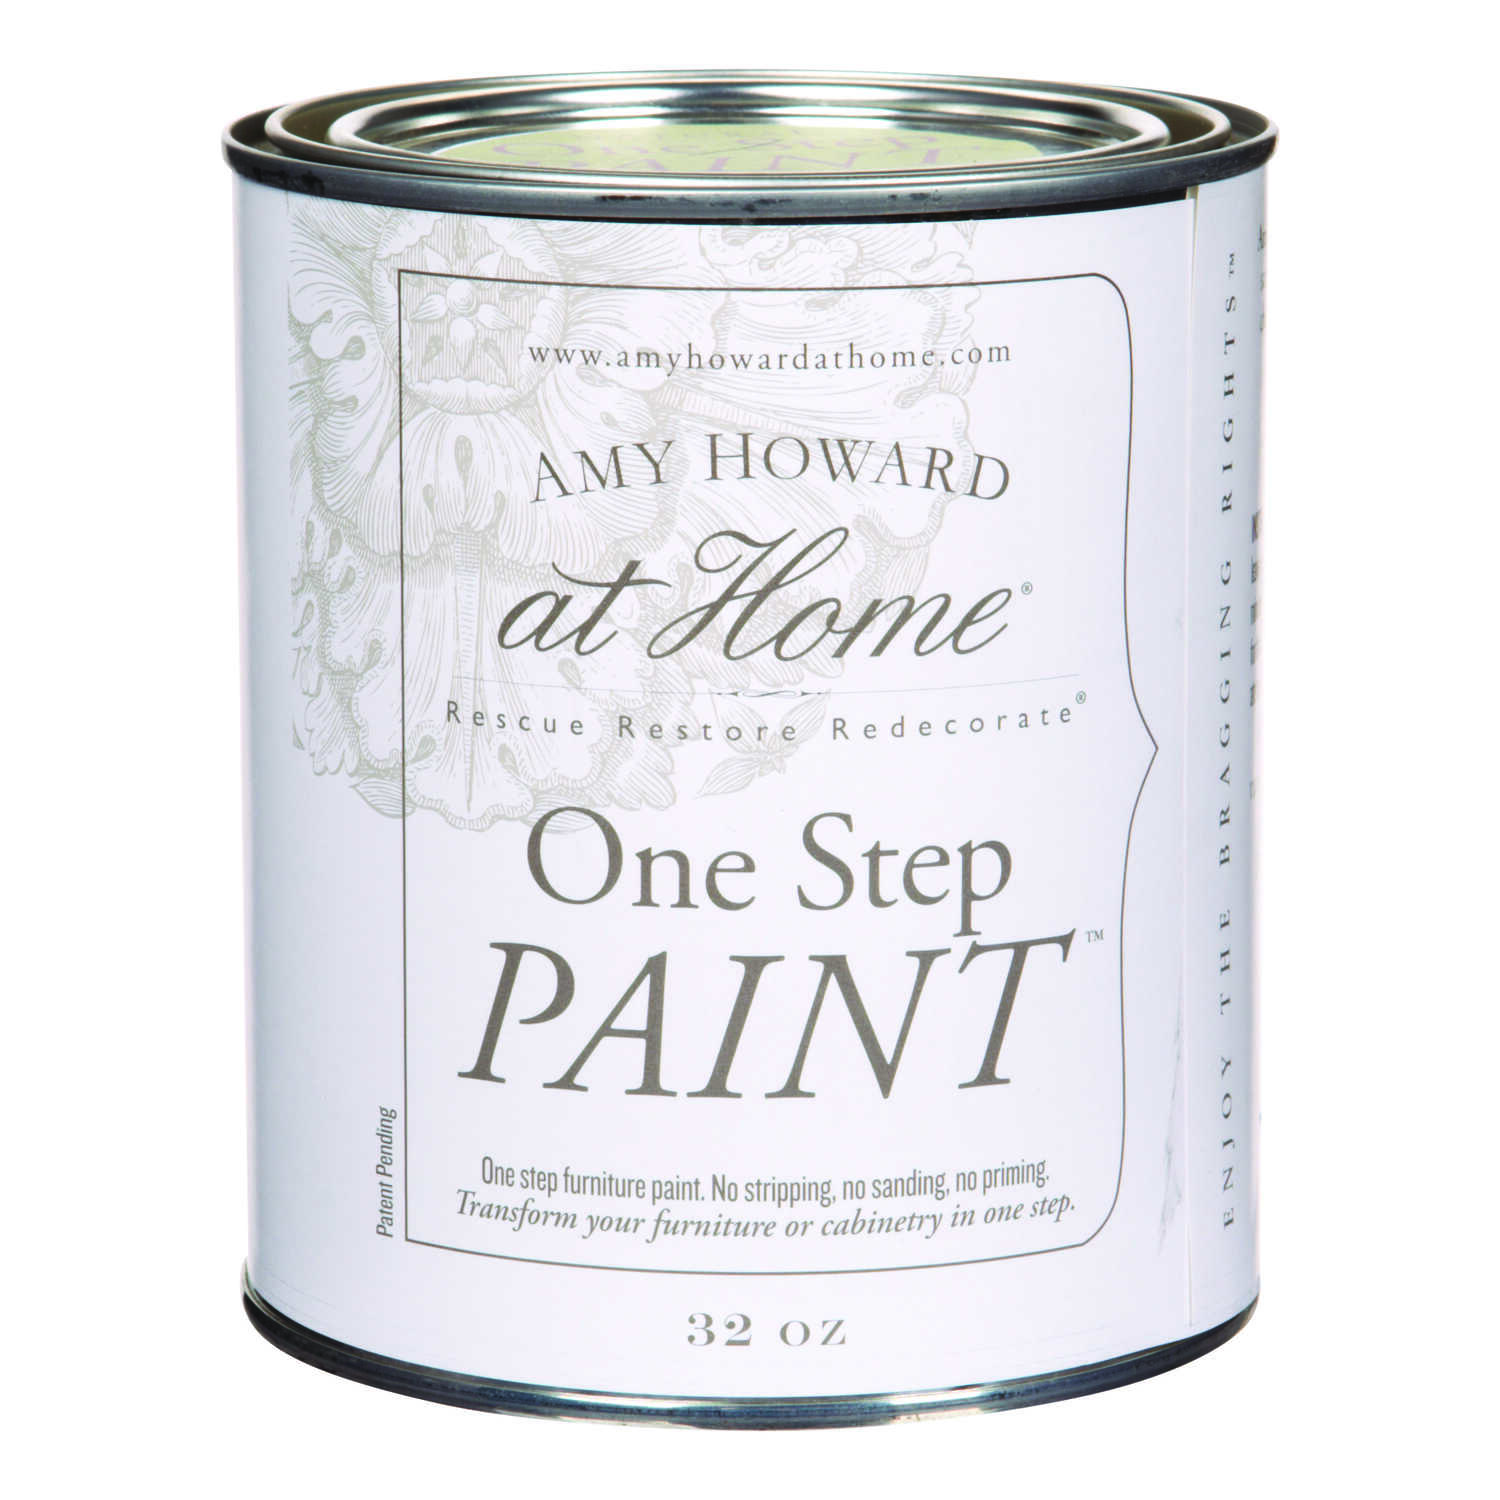 Amy Howard at Home  Flat Chalky Finish  Dunavant Green  Latex  One Step Paint  32 oz.